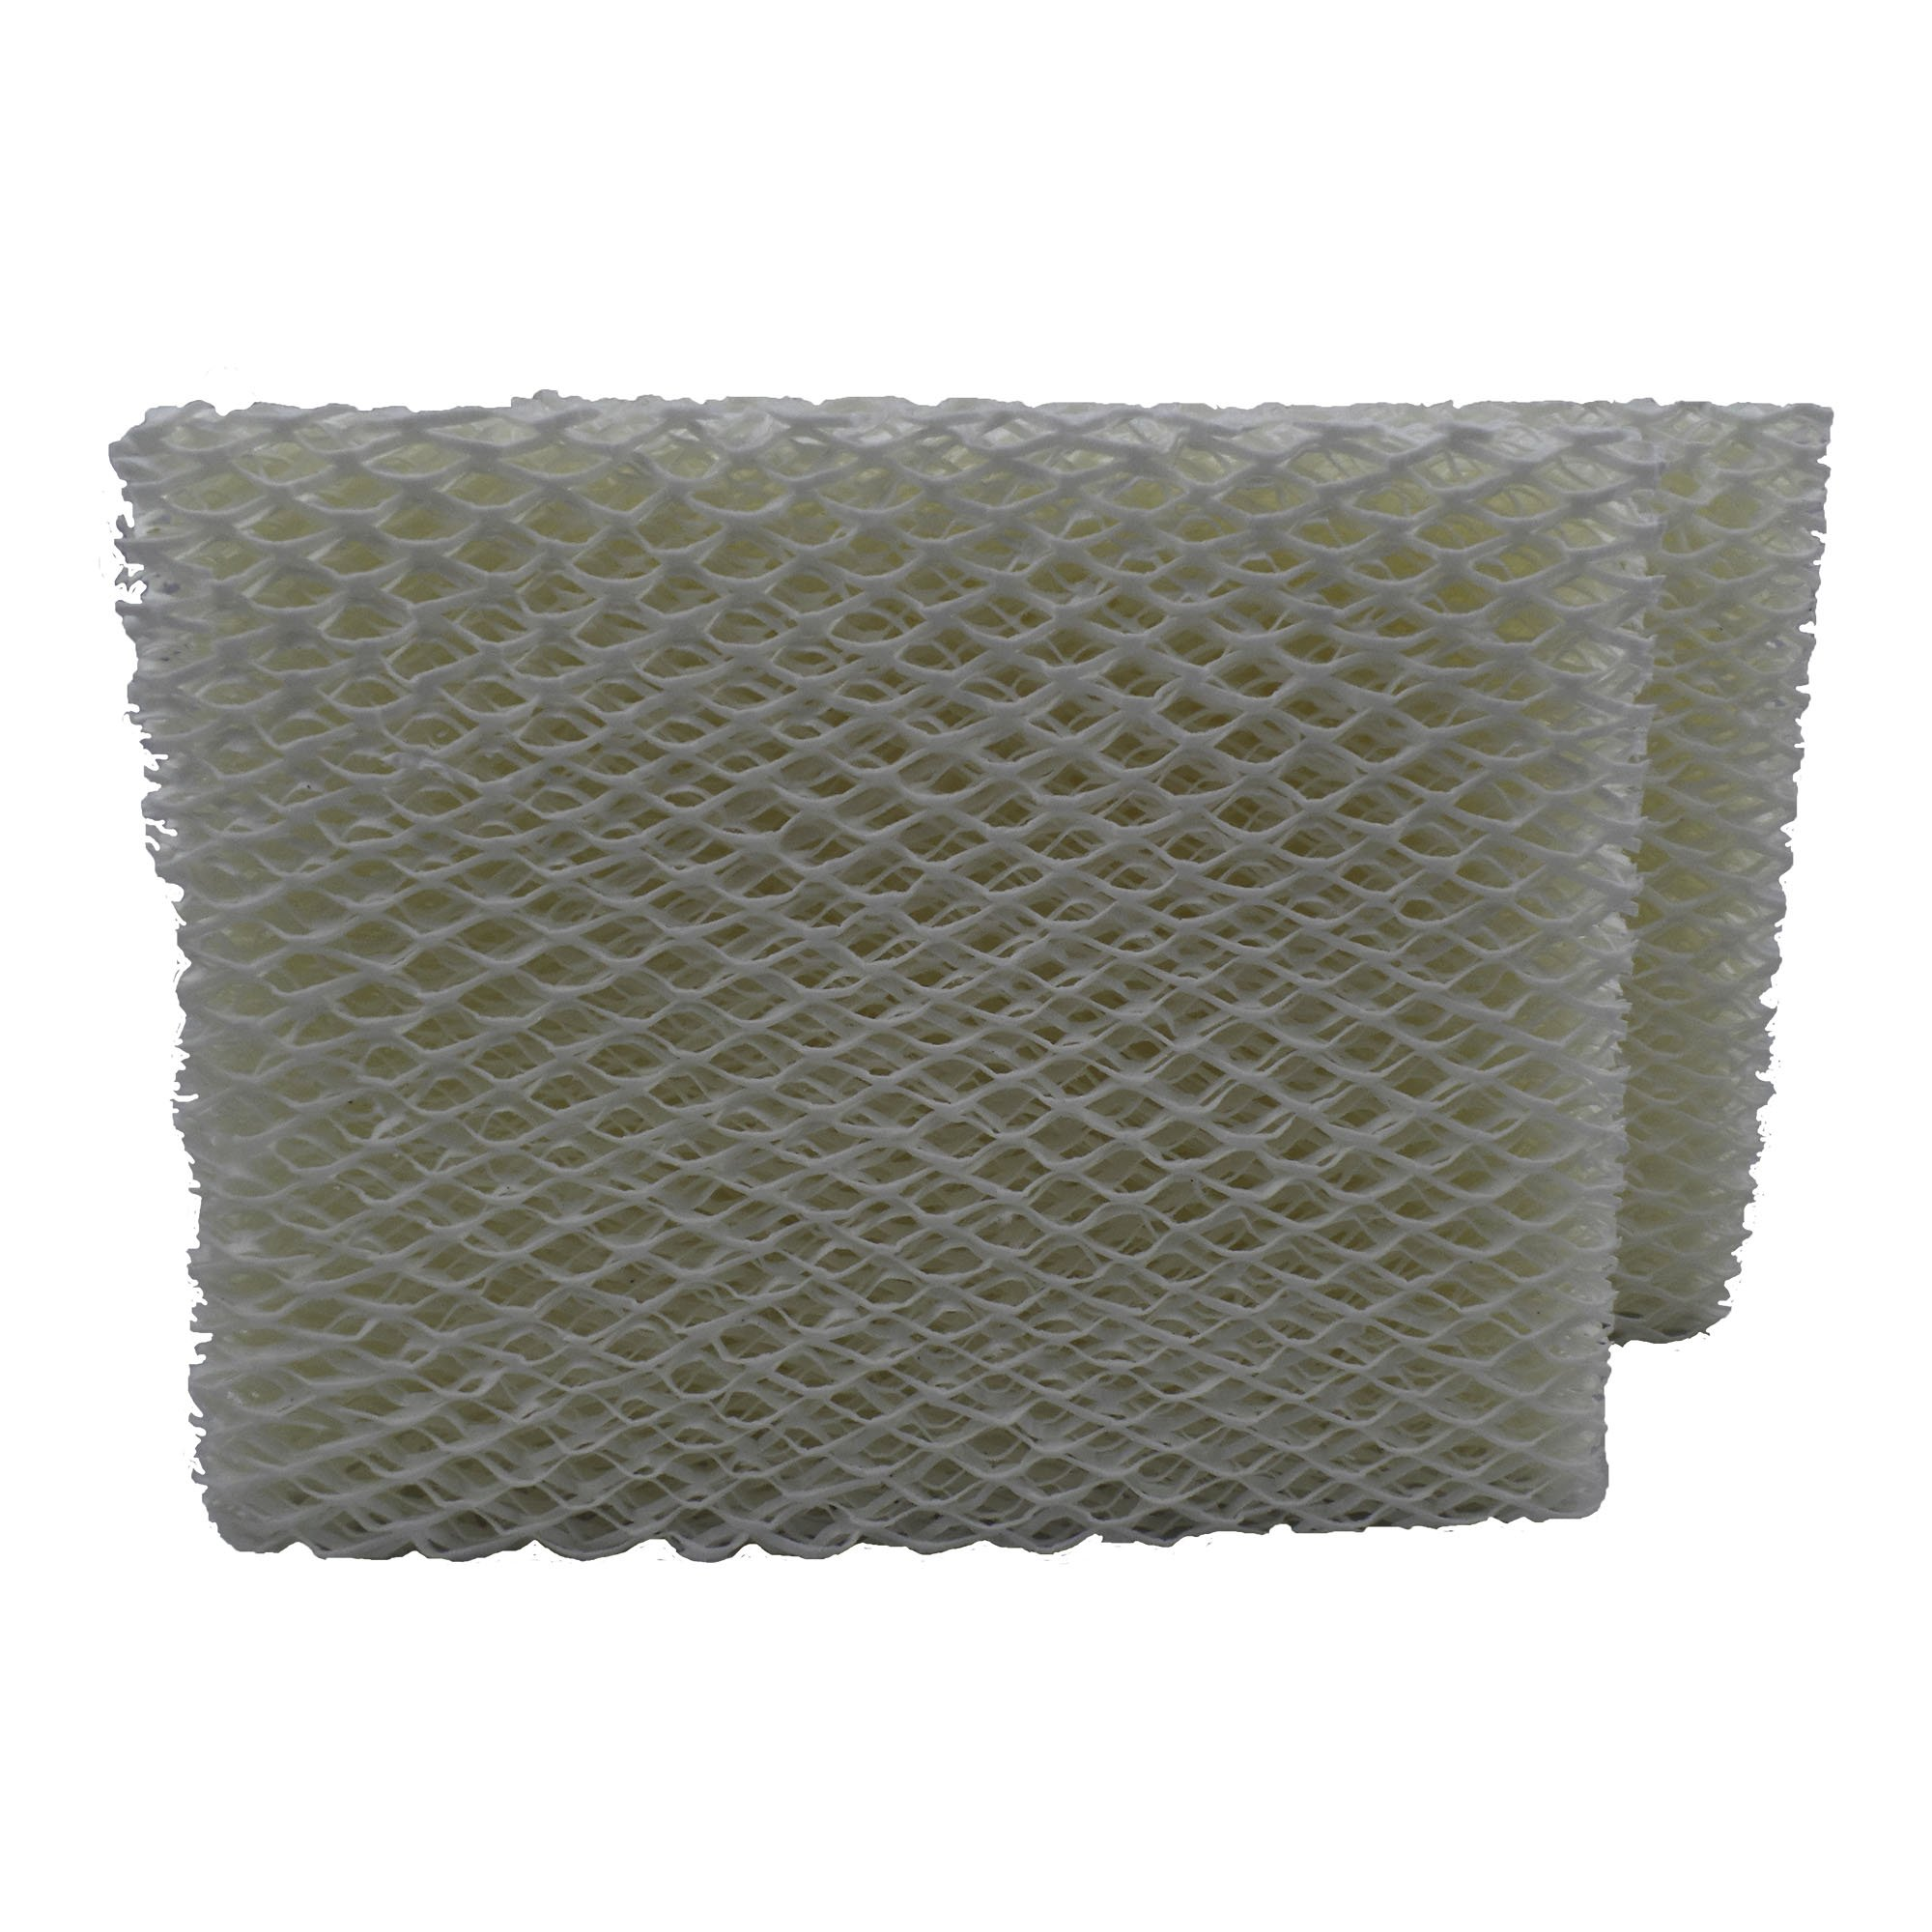 2 PACK Air Filter Factory Compatible Replacement For Vornado EVAP1, EVAP2, EVAP3, Model 30, Model 40, Model 50, MD1002 Humidifier Filter